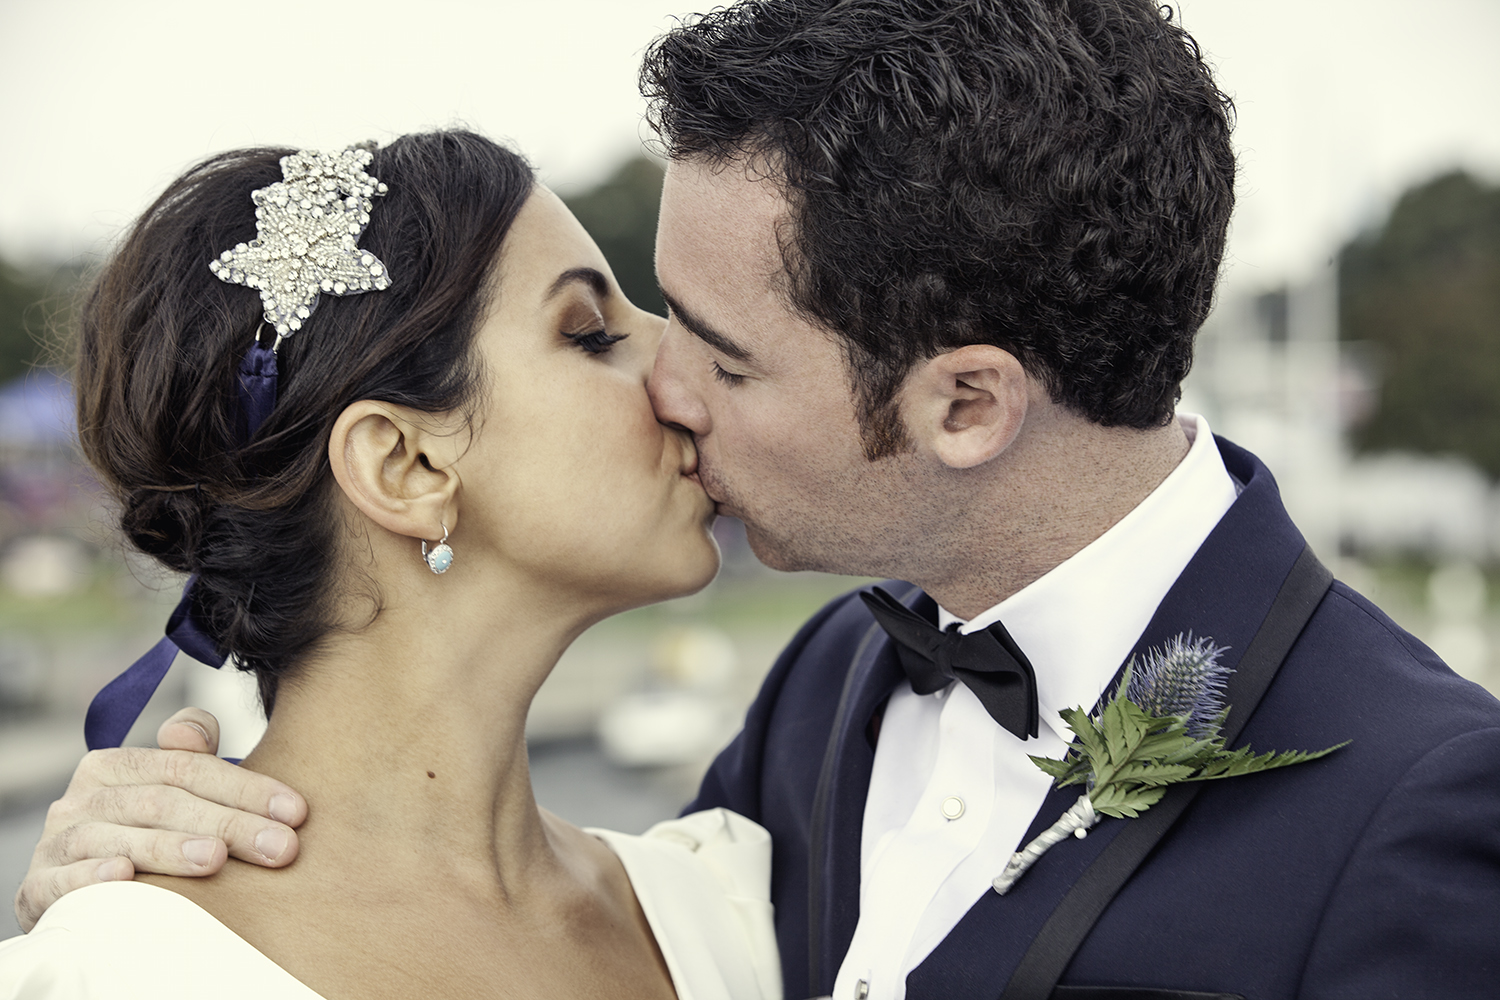 """She is a hidden gem!  Stephanie did a fantastic job shooting my wedding!  Everyone who sees the pictures raves about them.  She's talented without being obtrusive.  She lets the magic happen and captures it beautifully.  Book her now before she's too expensive!  Believe me she will be very soon!""  -- Liam T."